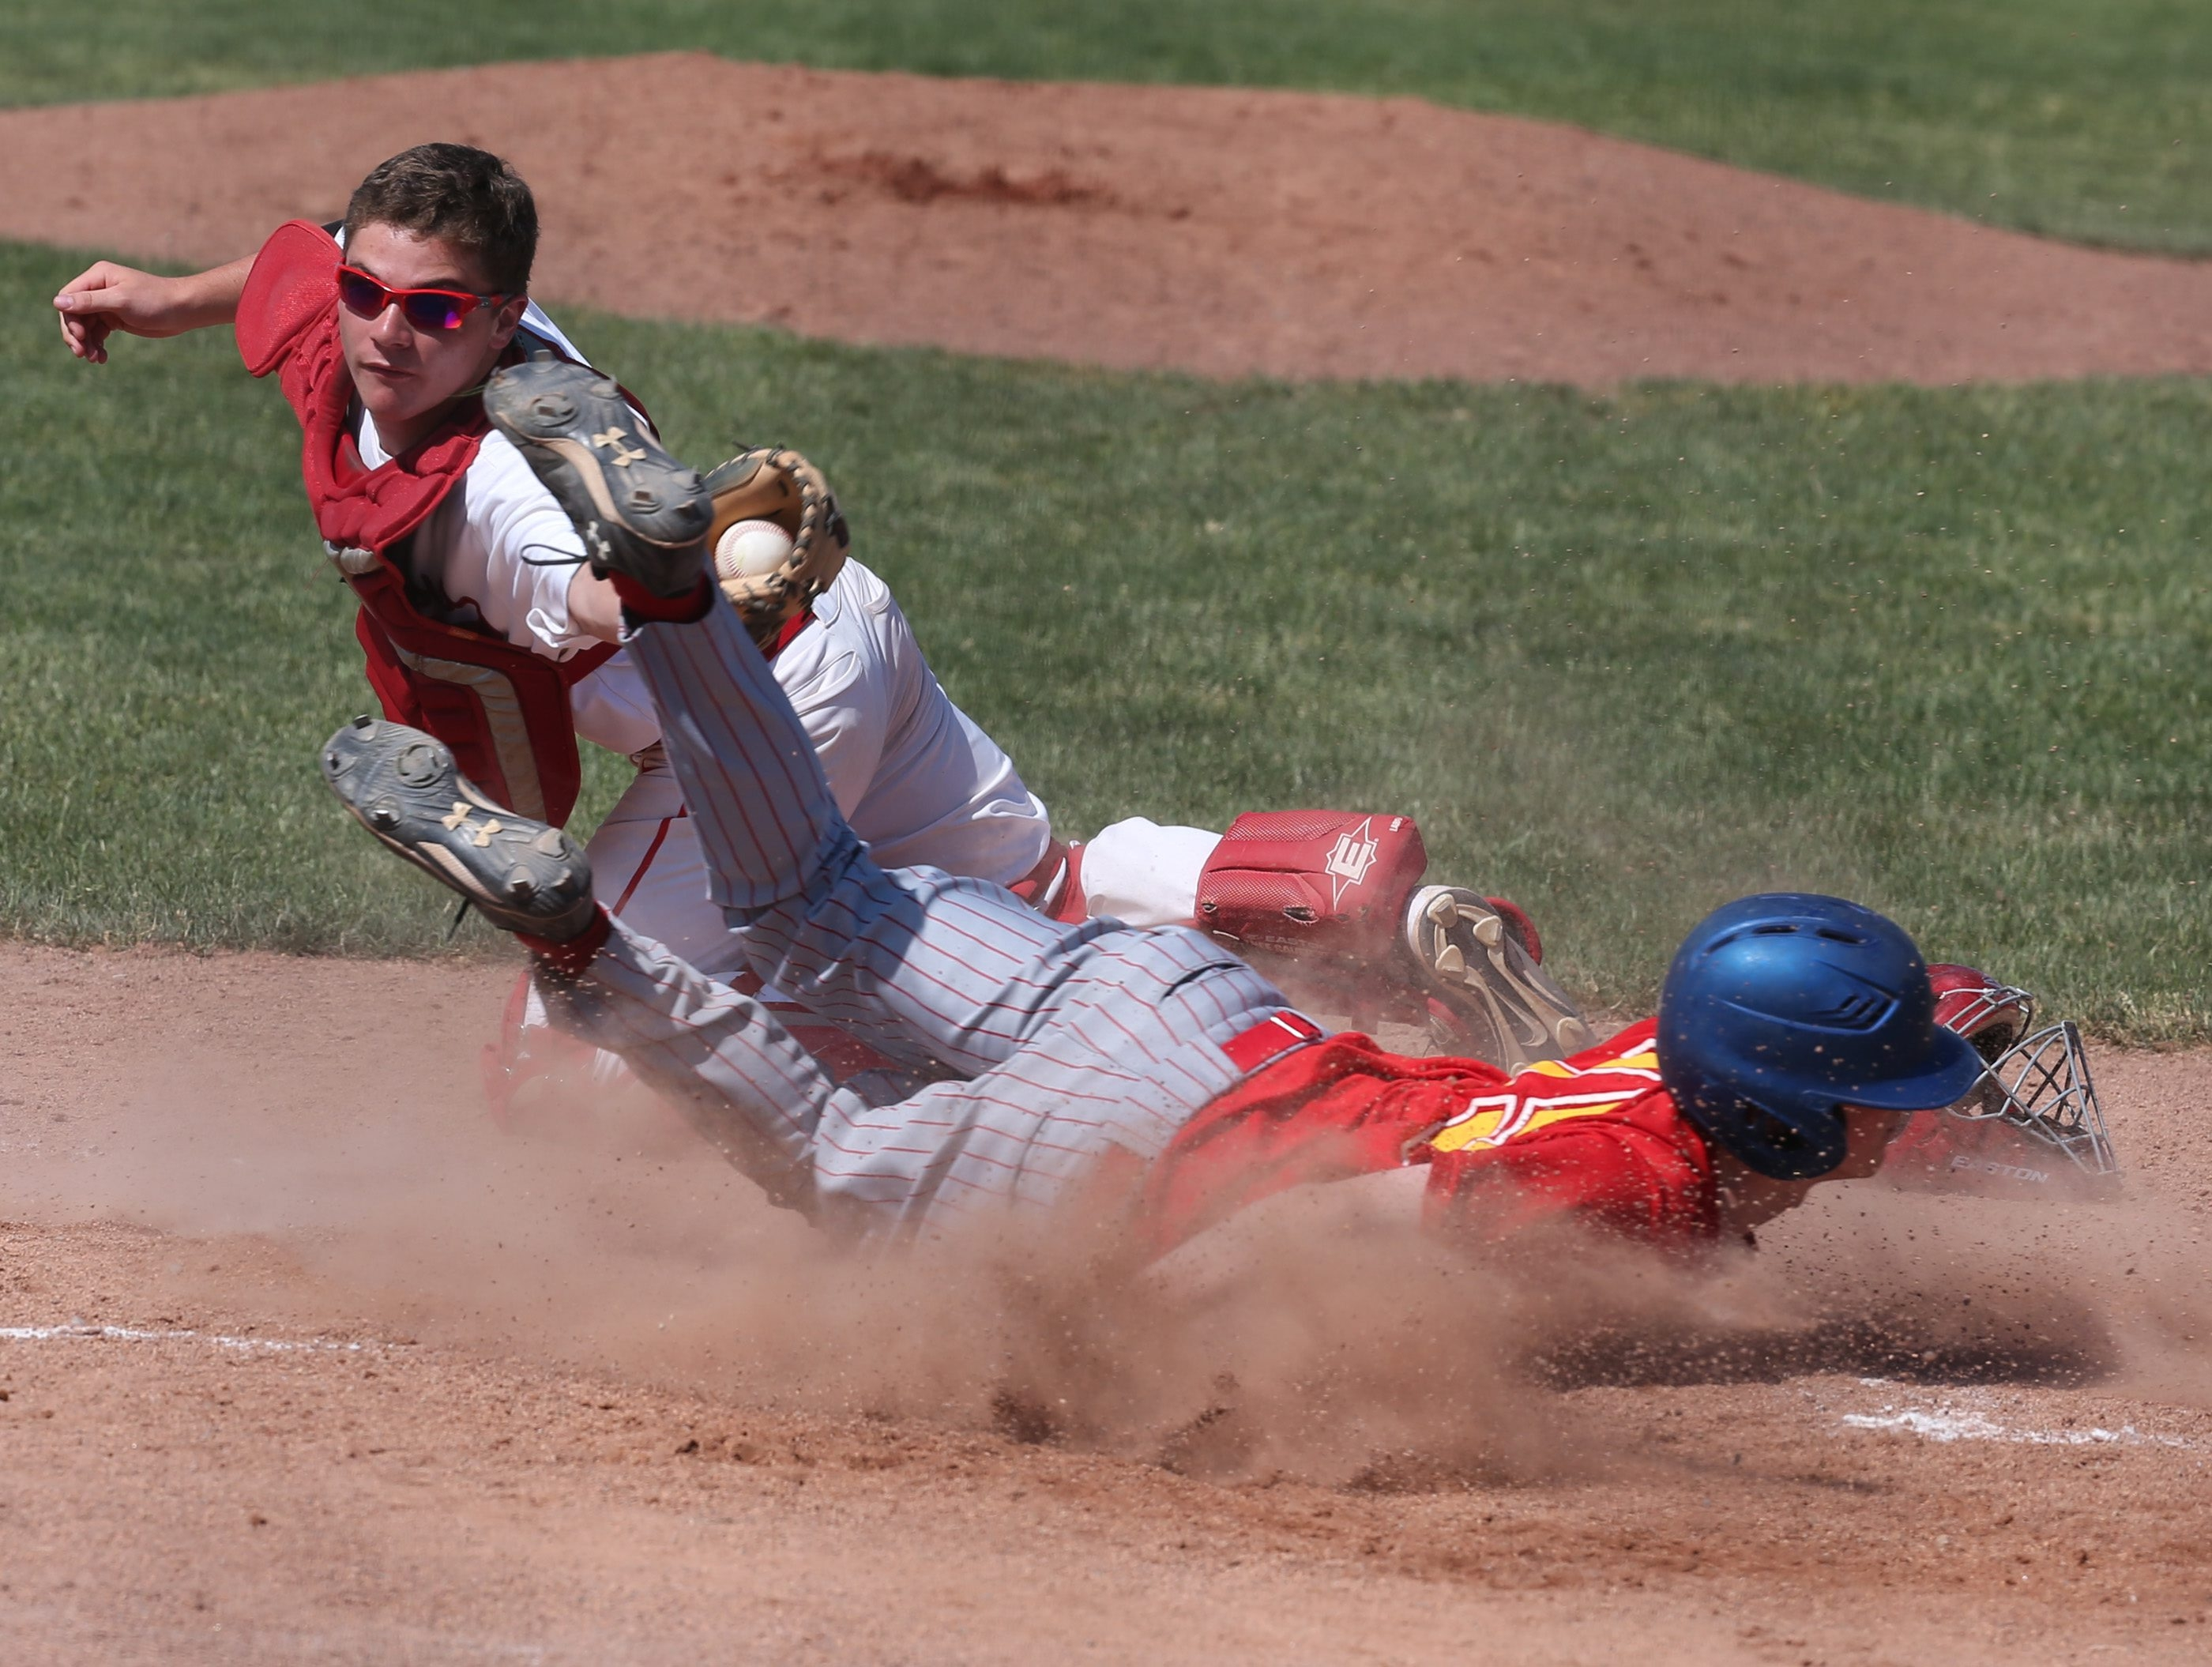 Williamsville East's Jack Rubins slides safely into home under the tag of Iroquois catcher Brent Reid during the Flames' three-run second inning in the Class A championship game.